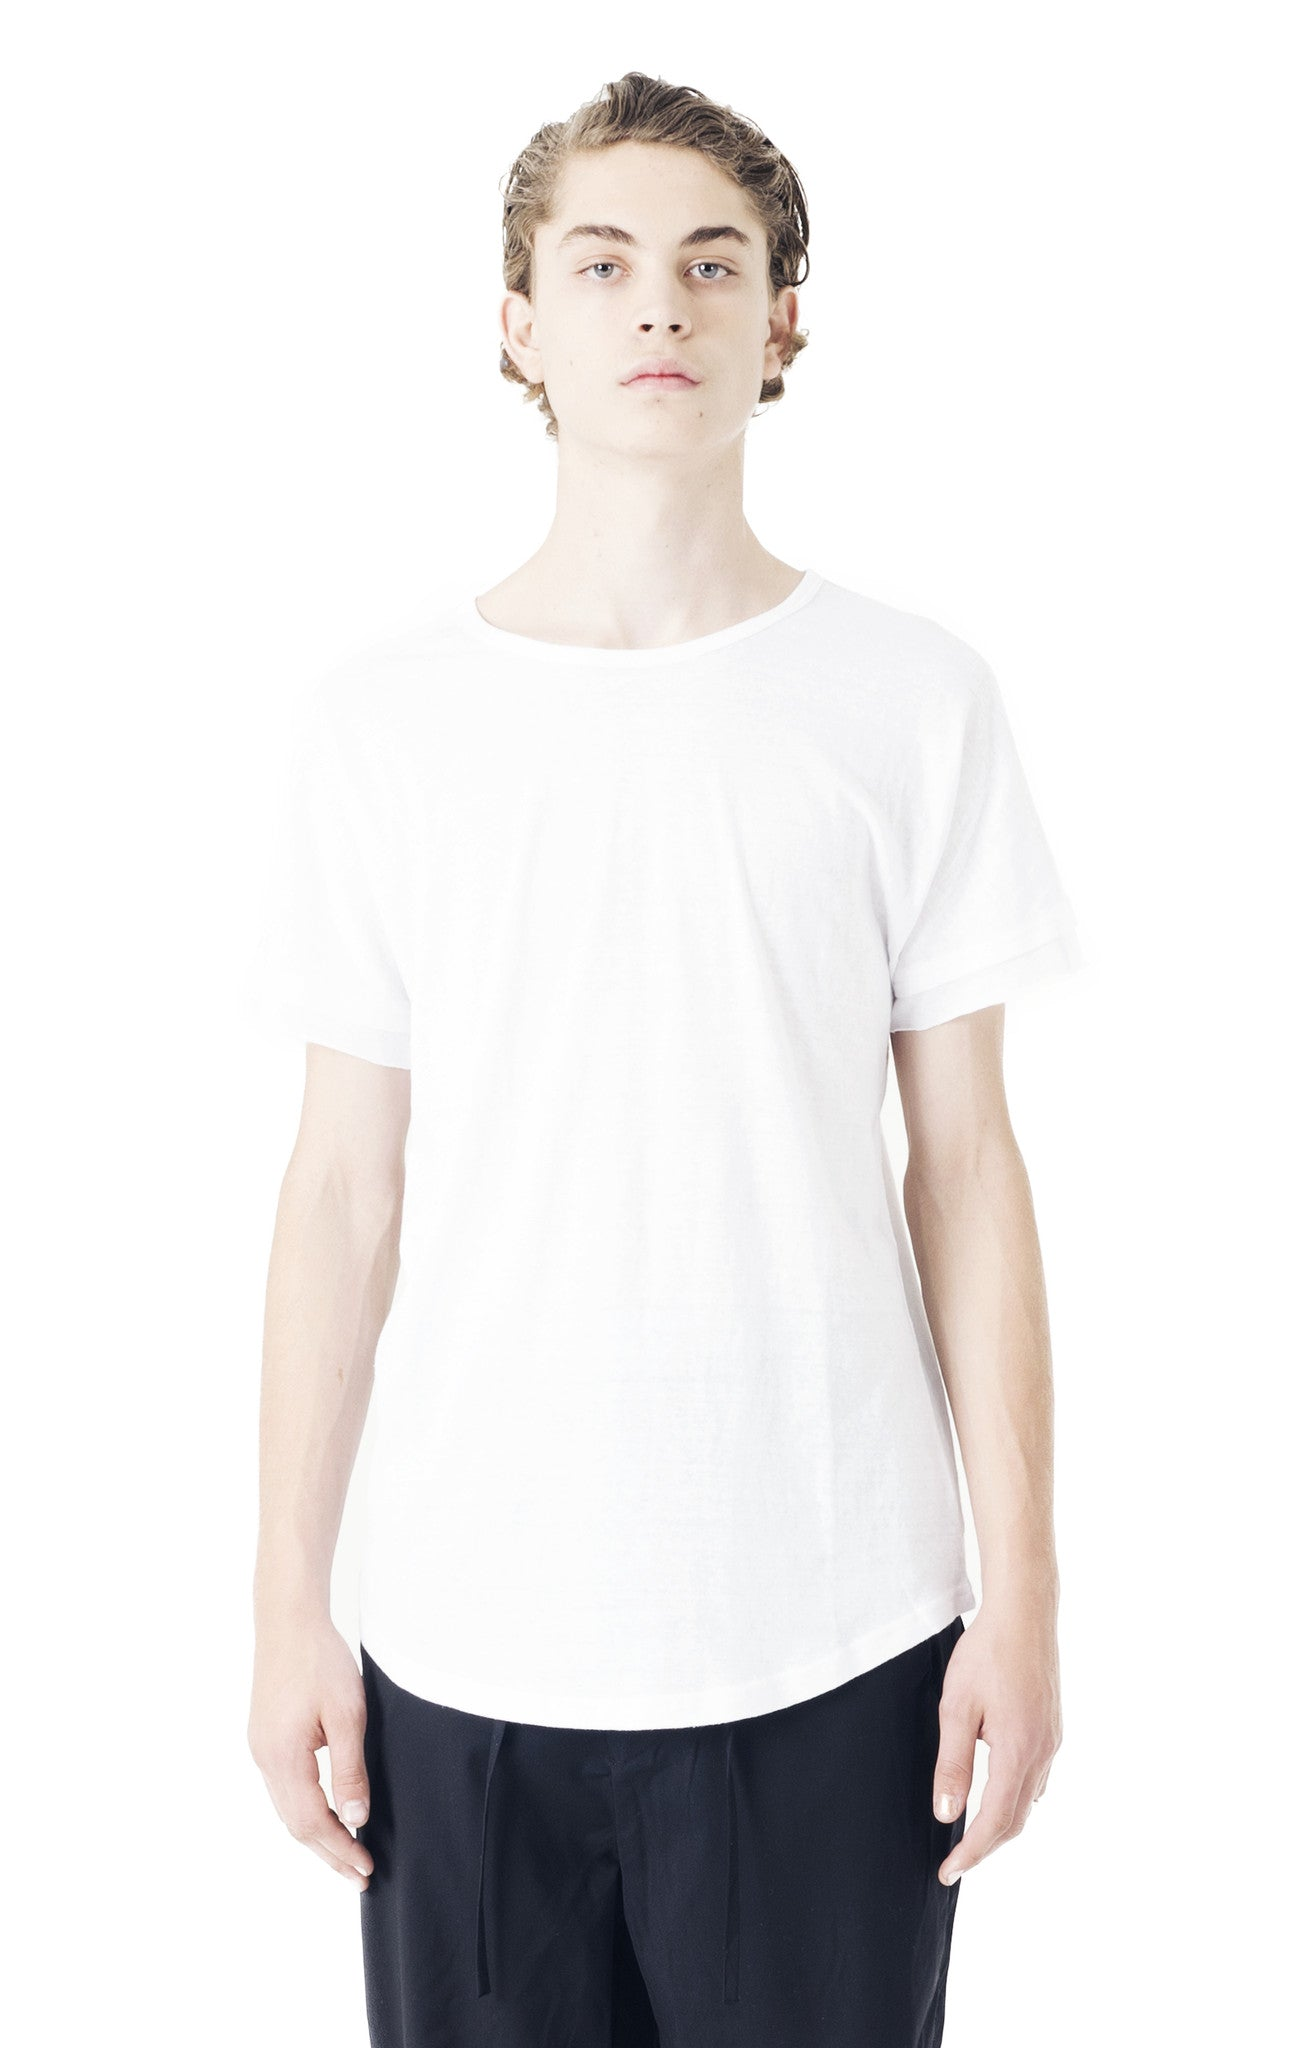 Salt T-Shirt - White